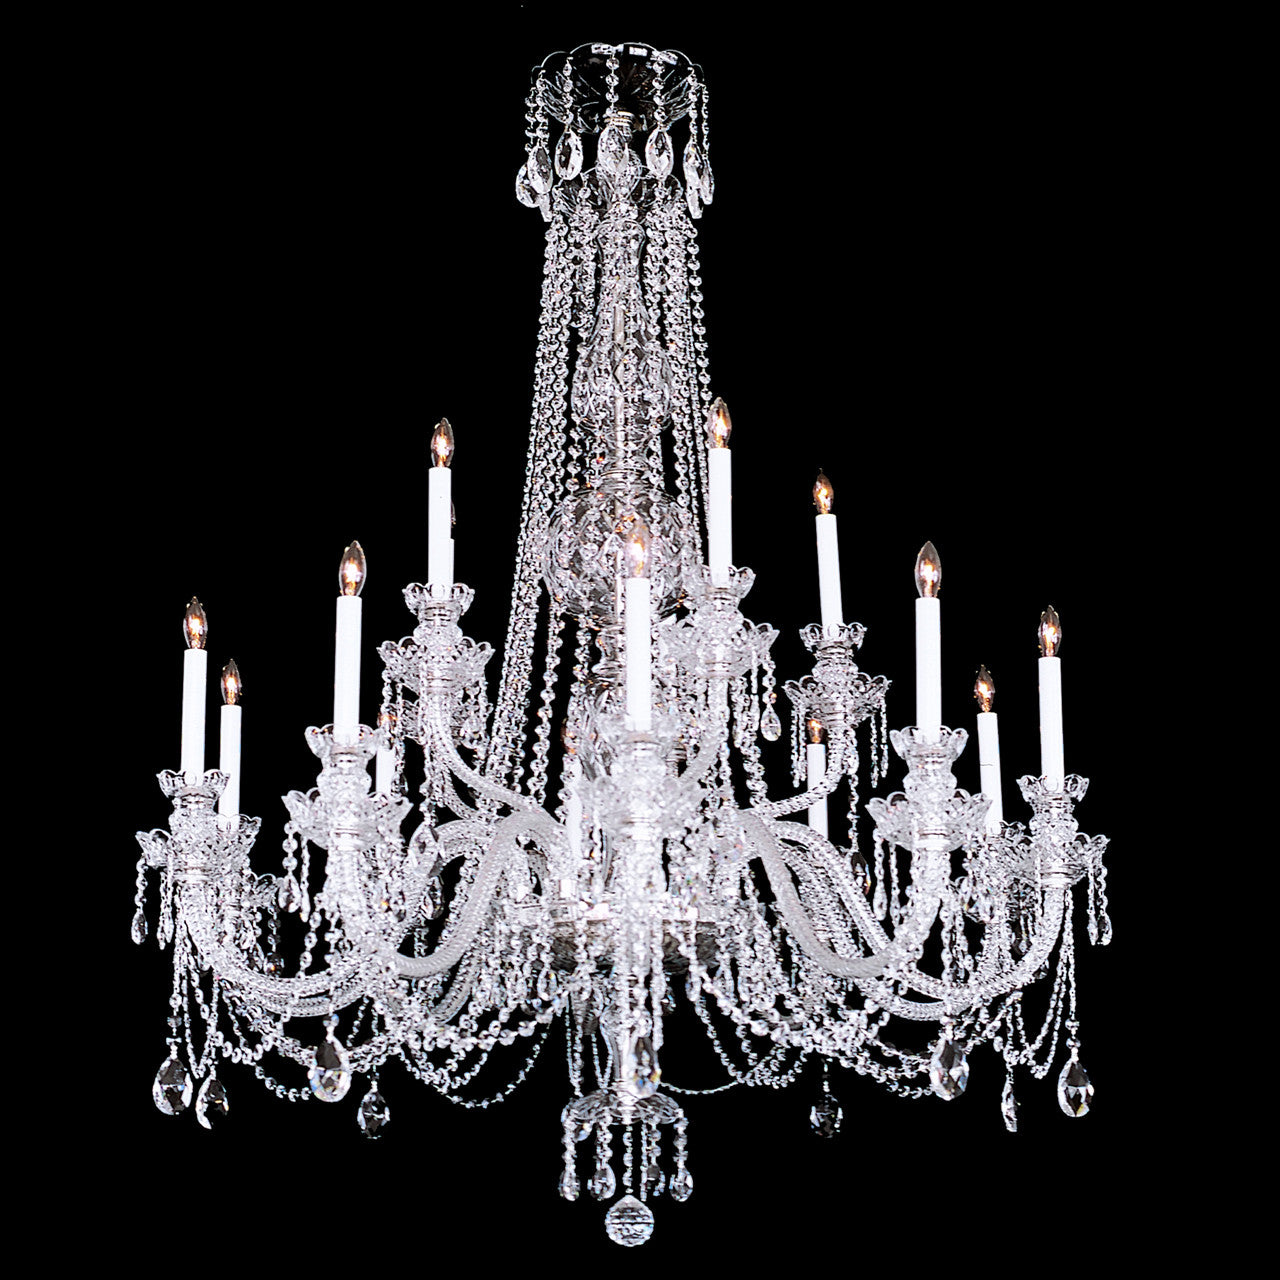 Swarovski Crystal Dollhouse Chandelier: 15 Light Crystal Chandelier With Swarovski